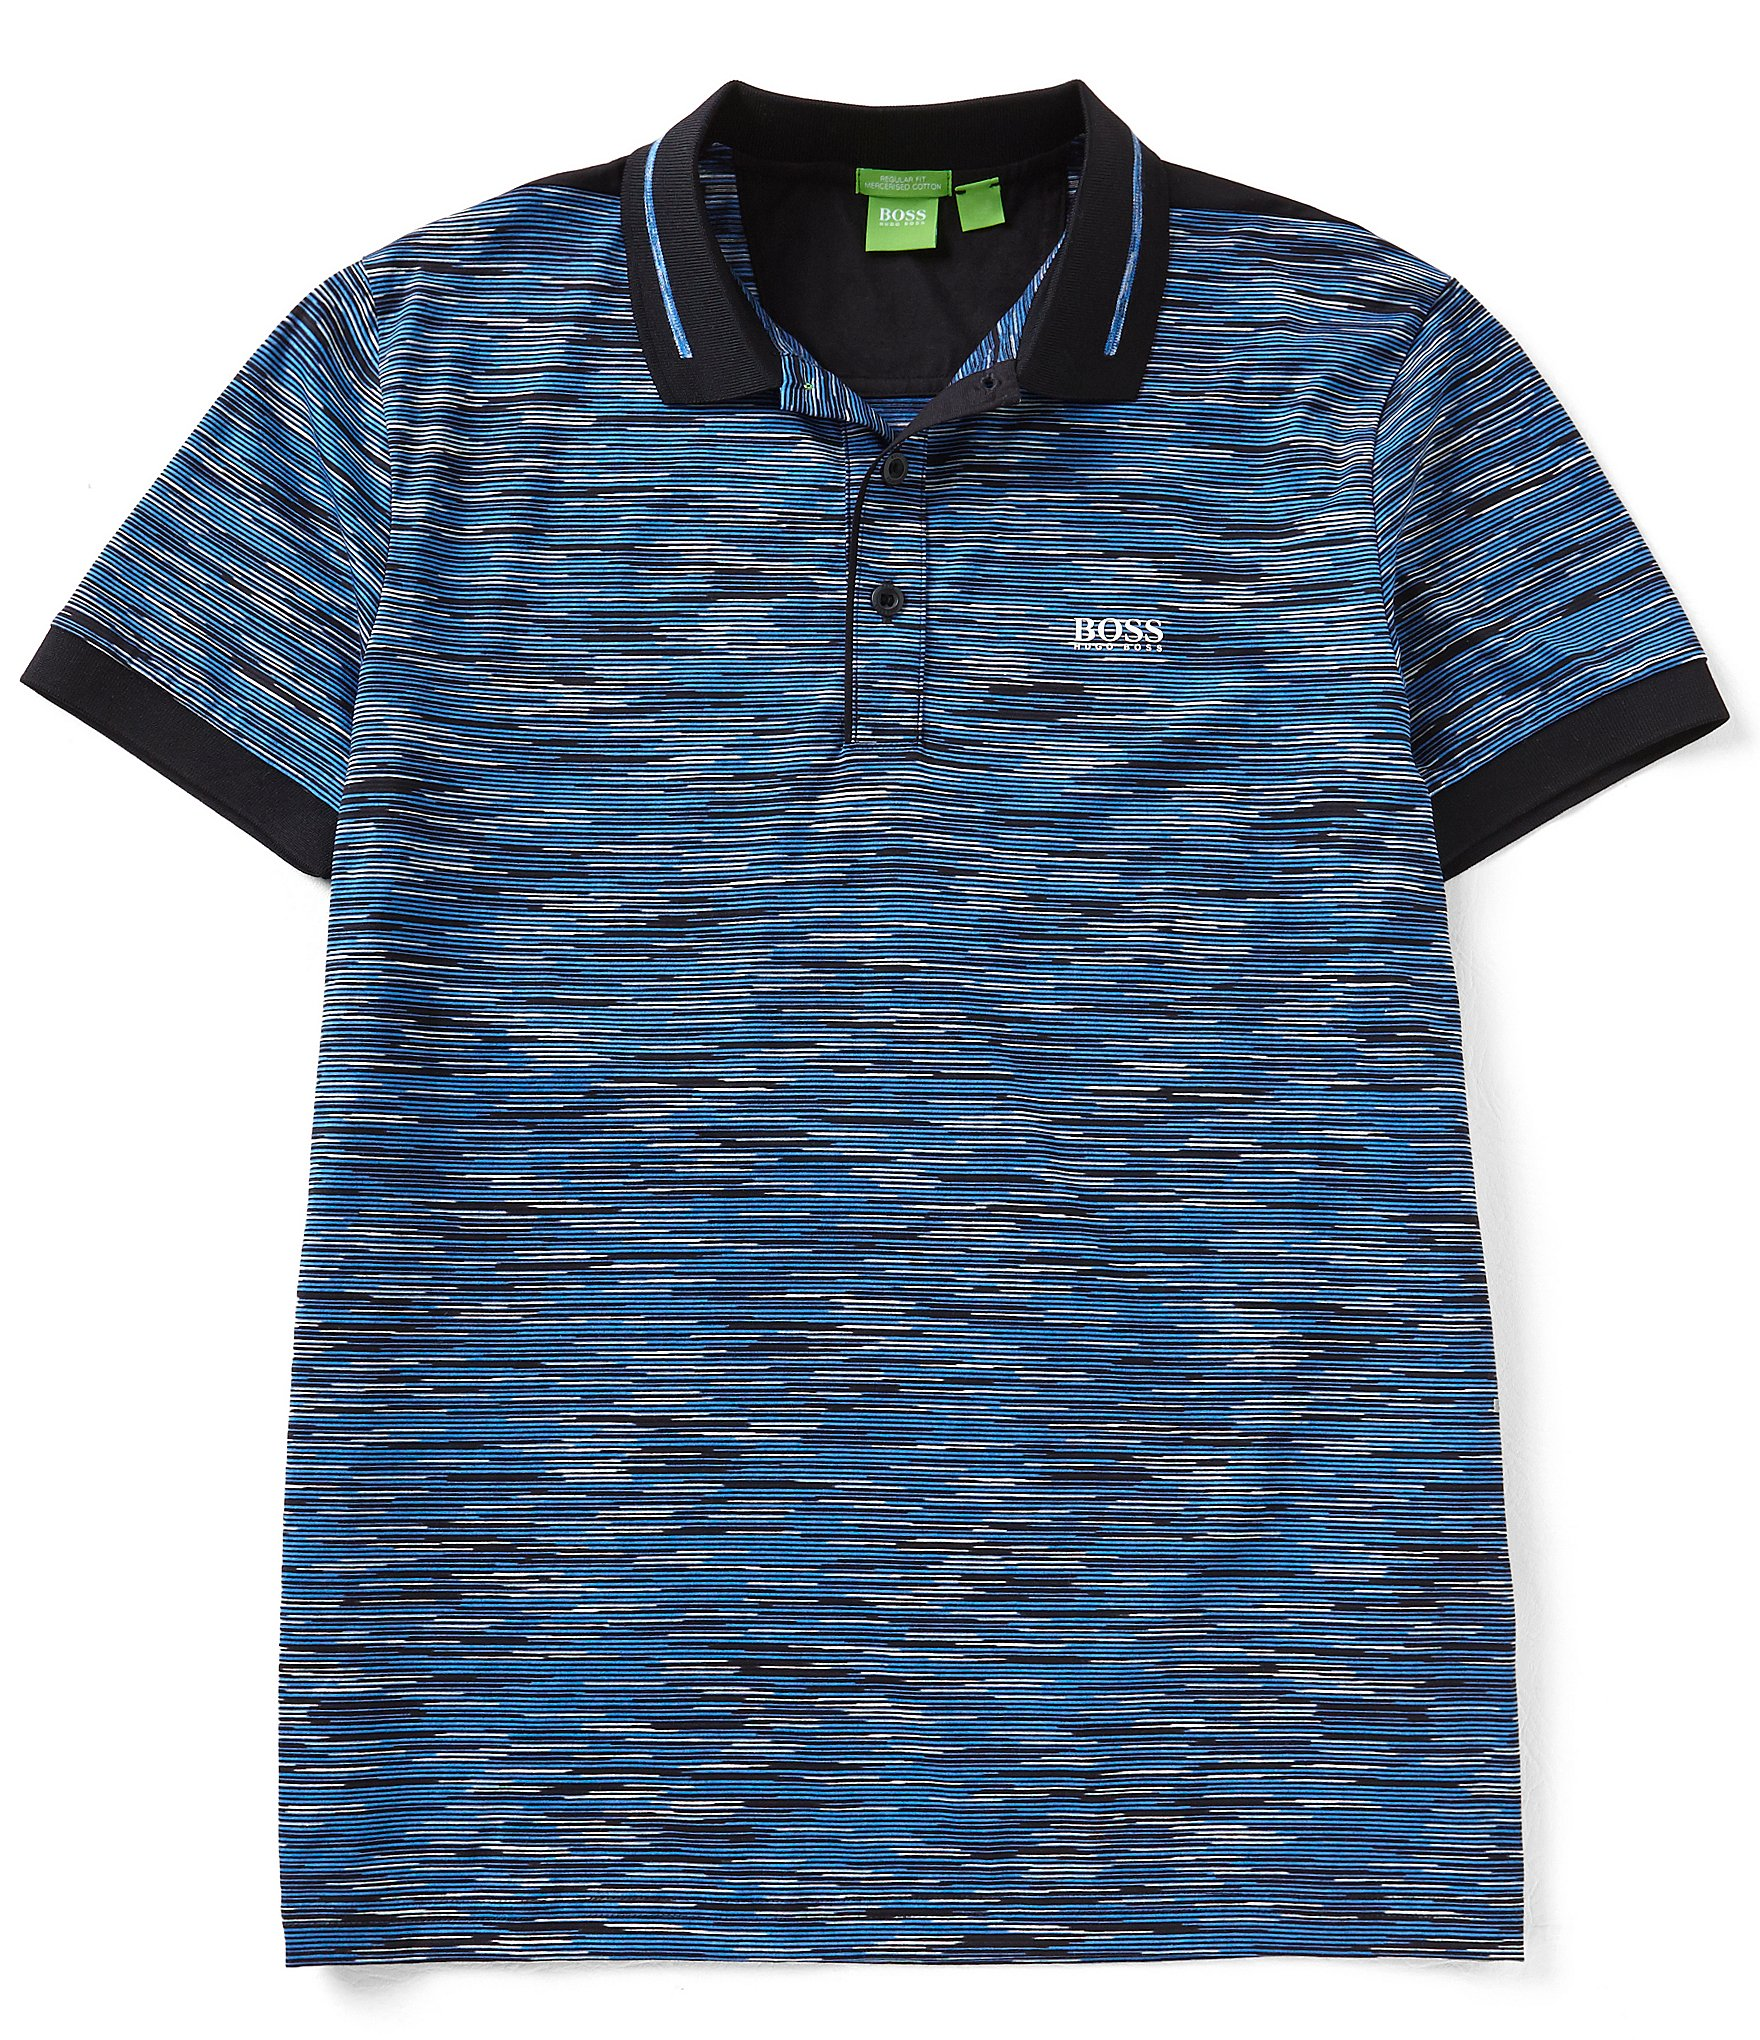 The best polo shirts for men - The Best Polo Shirts For Men 27